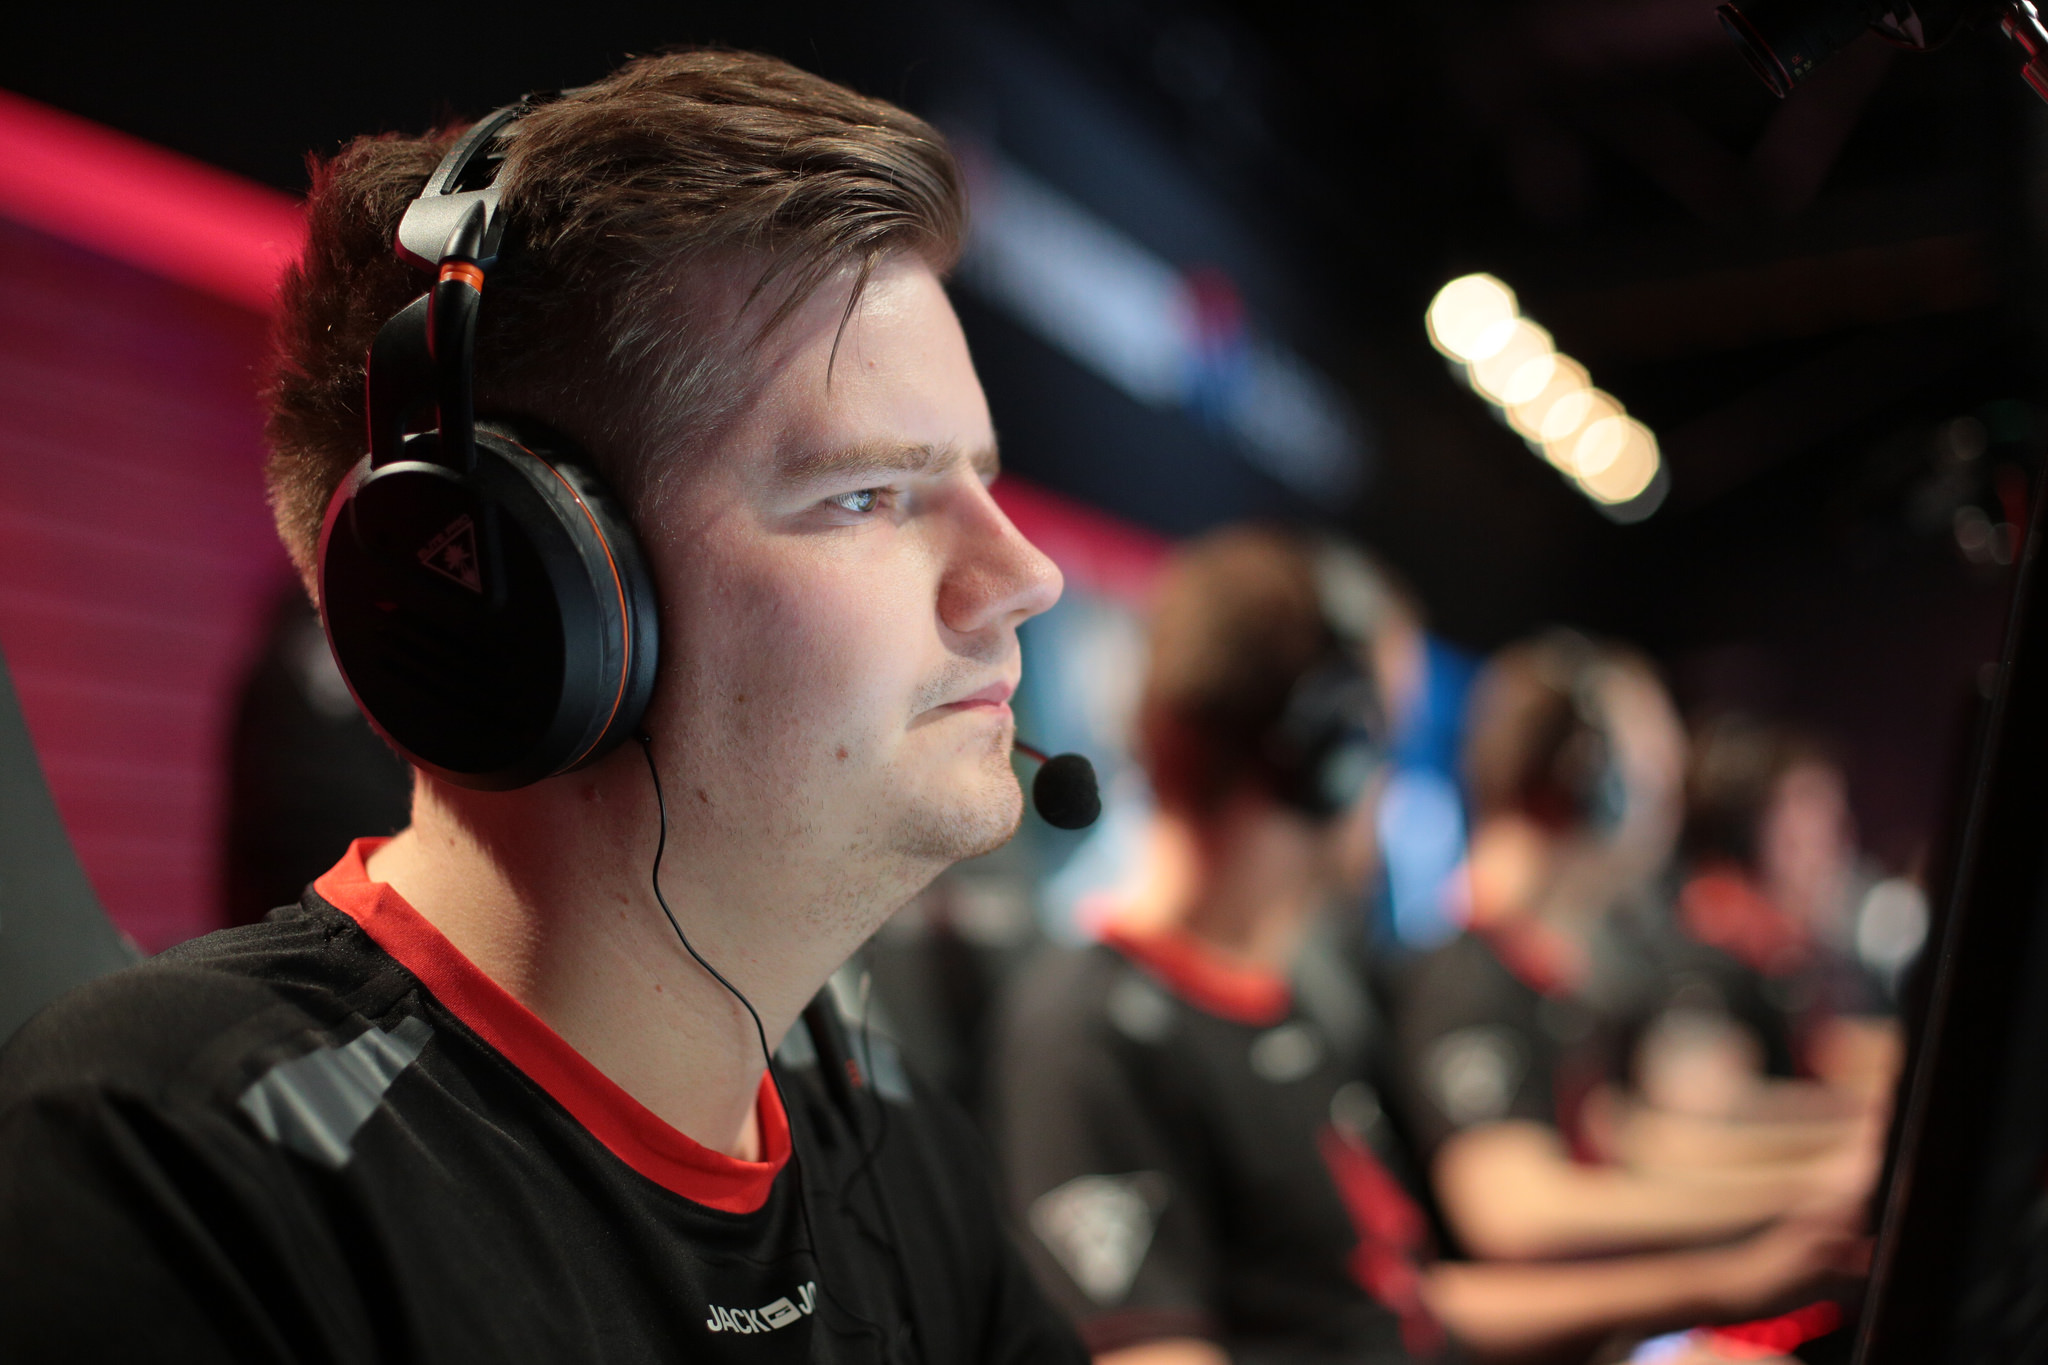 Astralis dupreeh